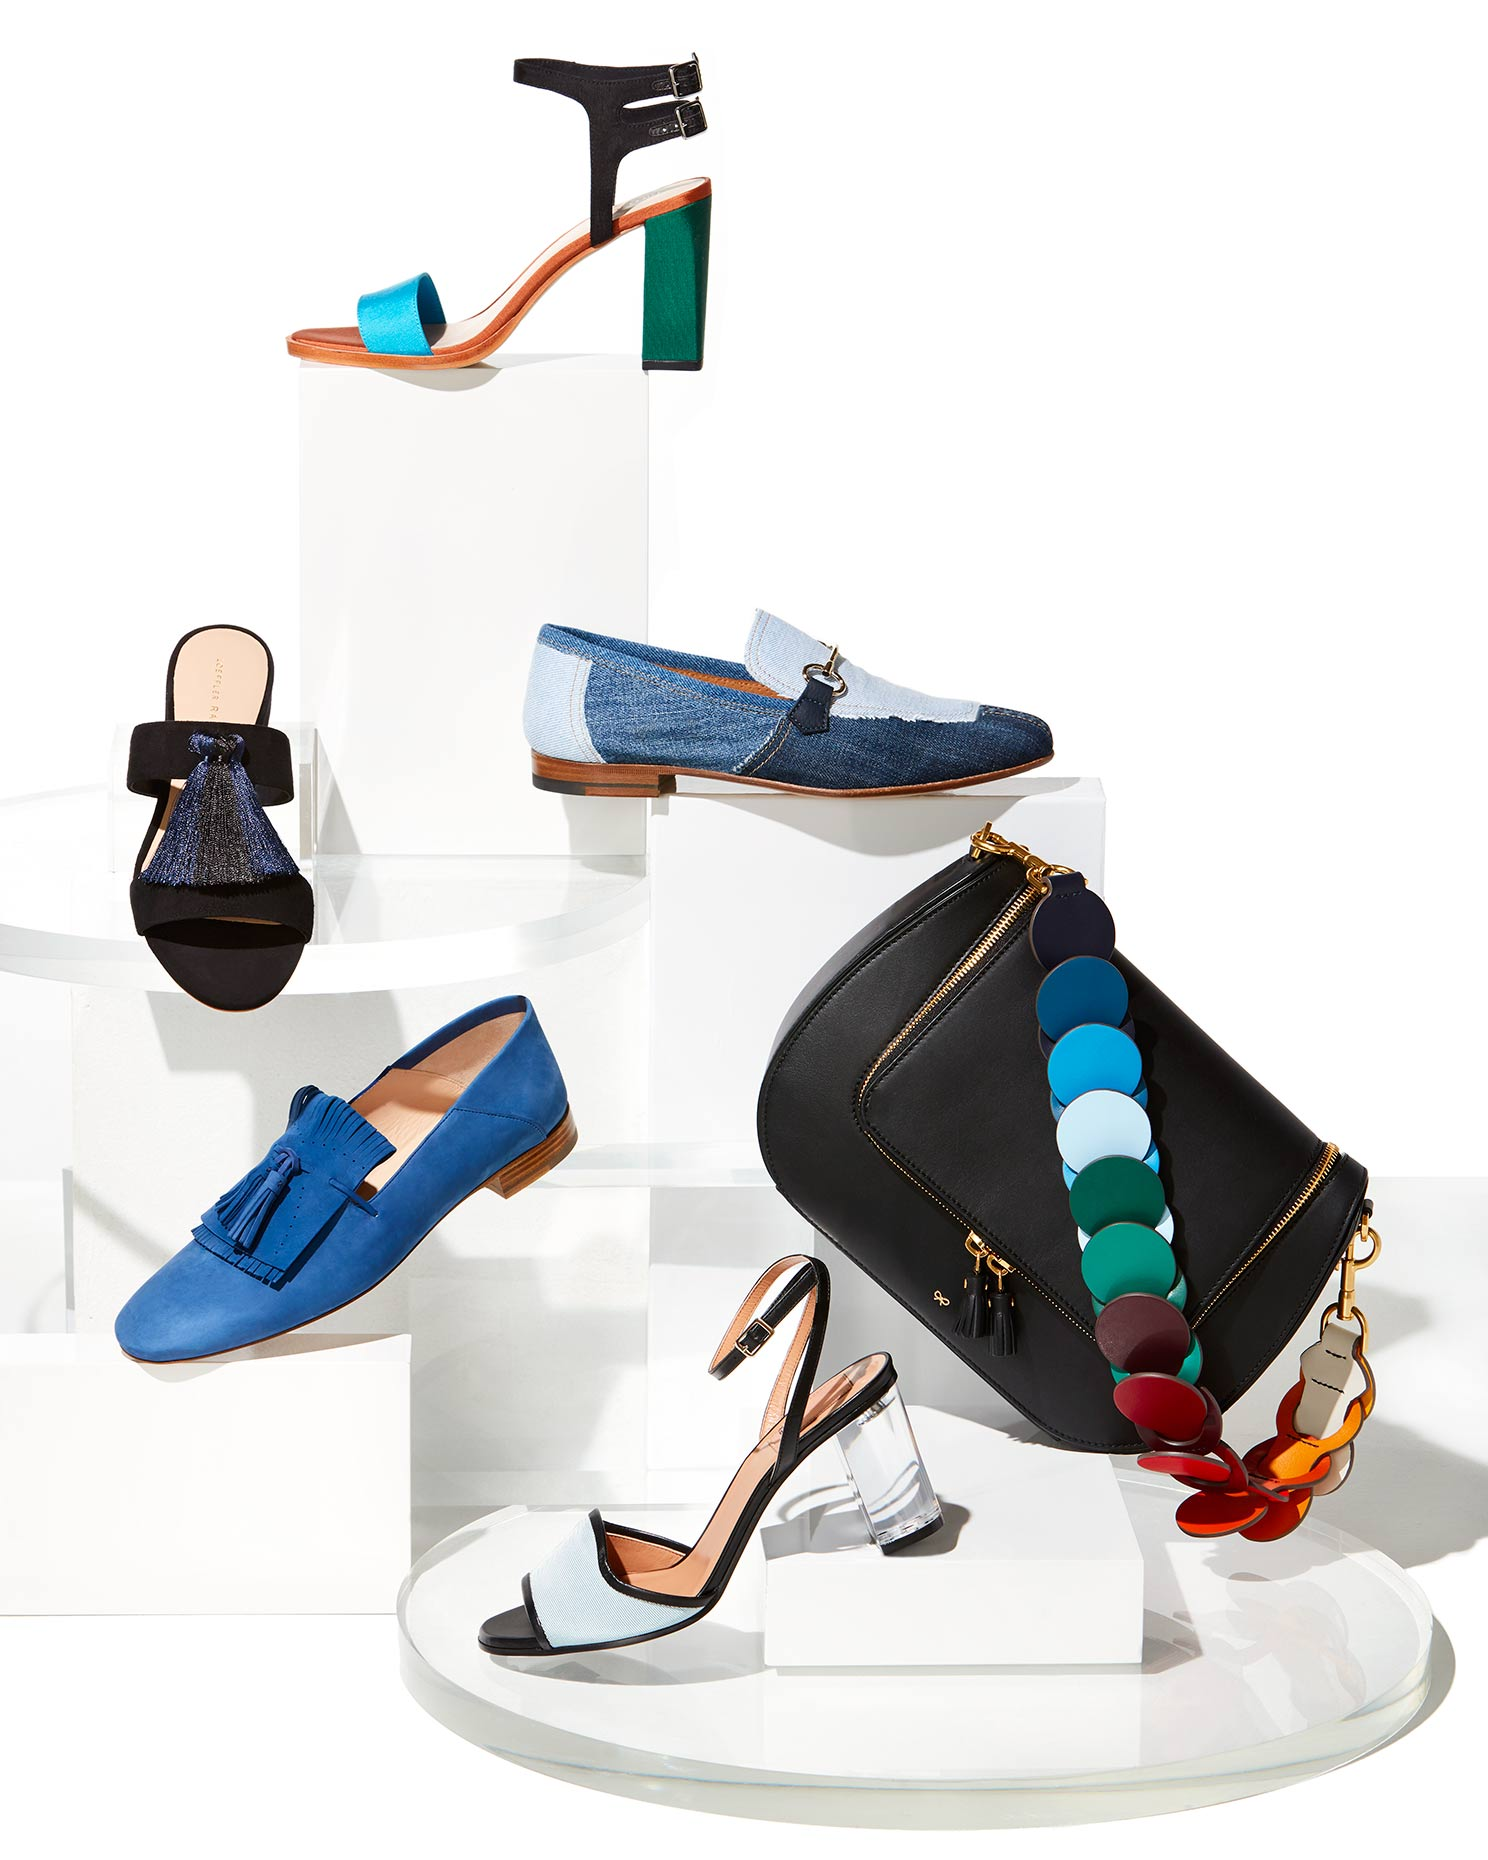 Catalog photography featuring womens Italian shoes.